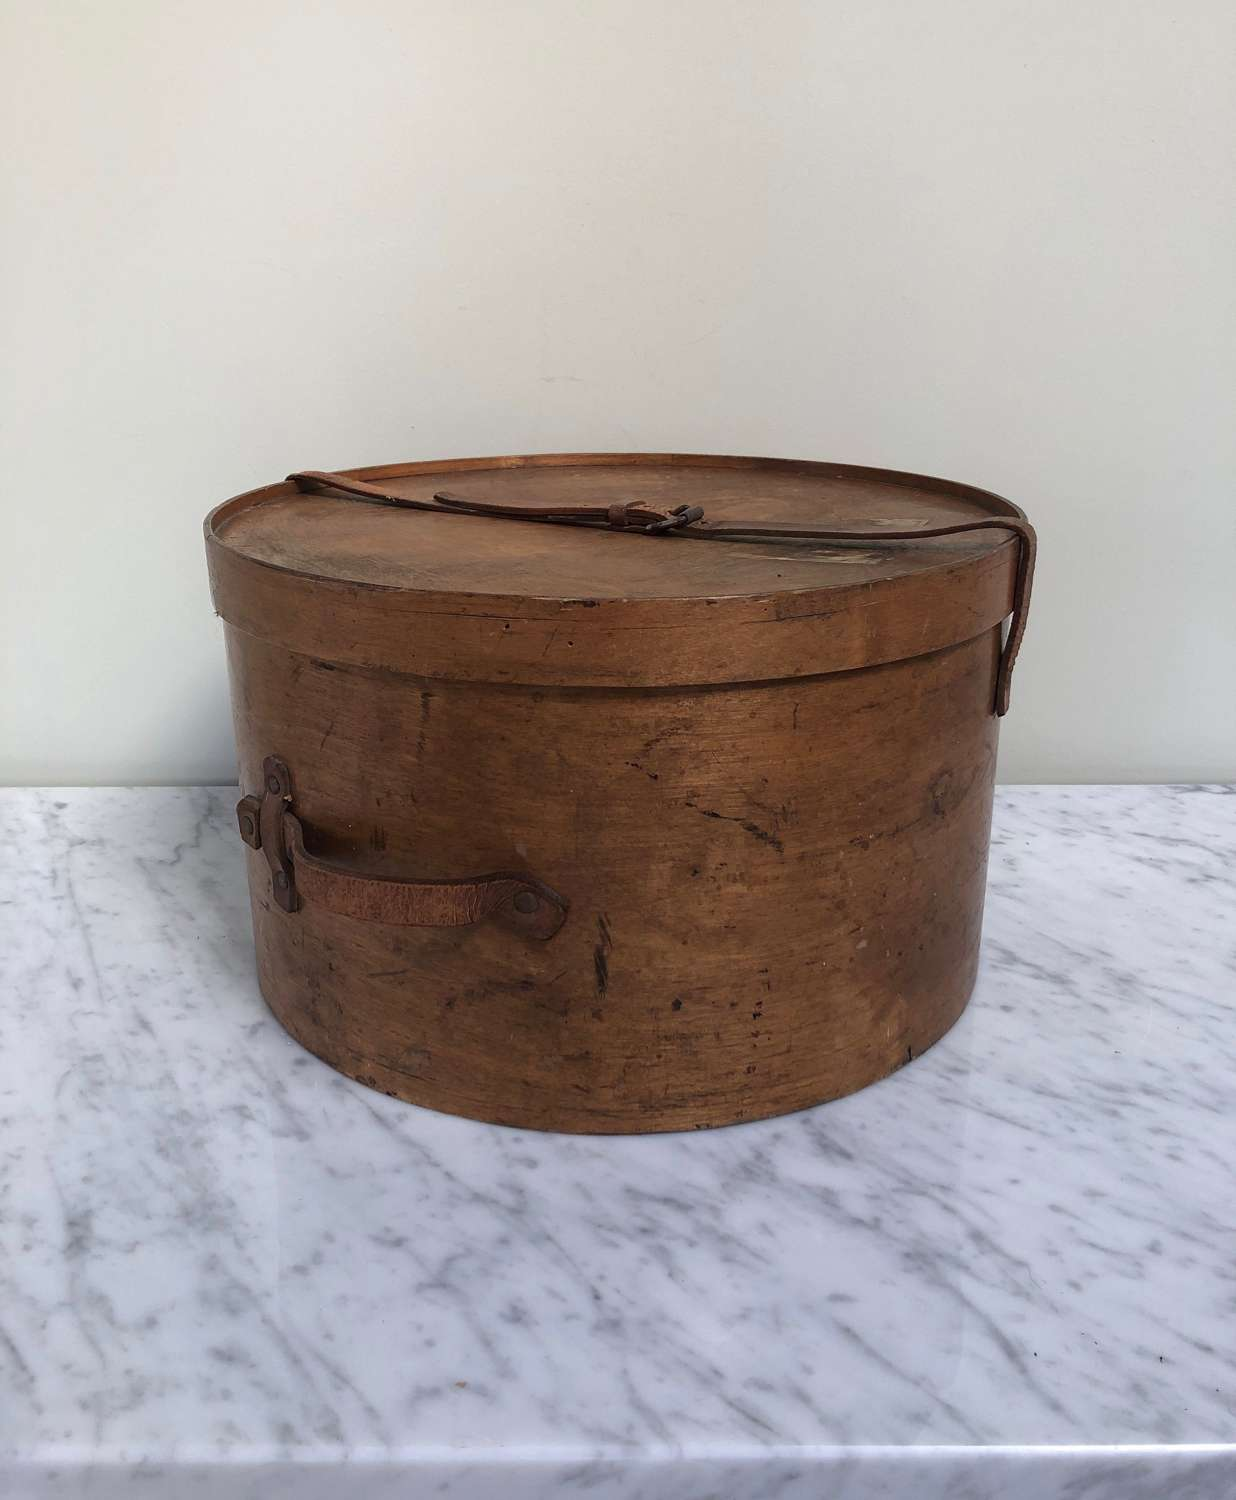 Antique Travelling Hat Box with Leather Handle & Strap